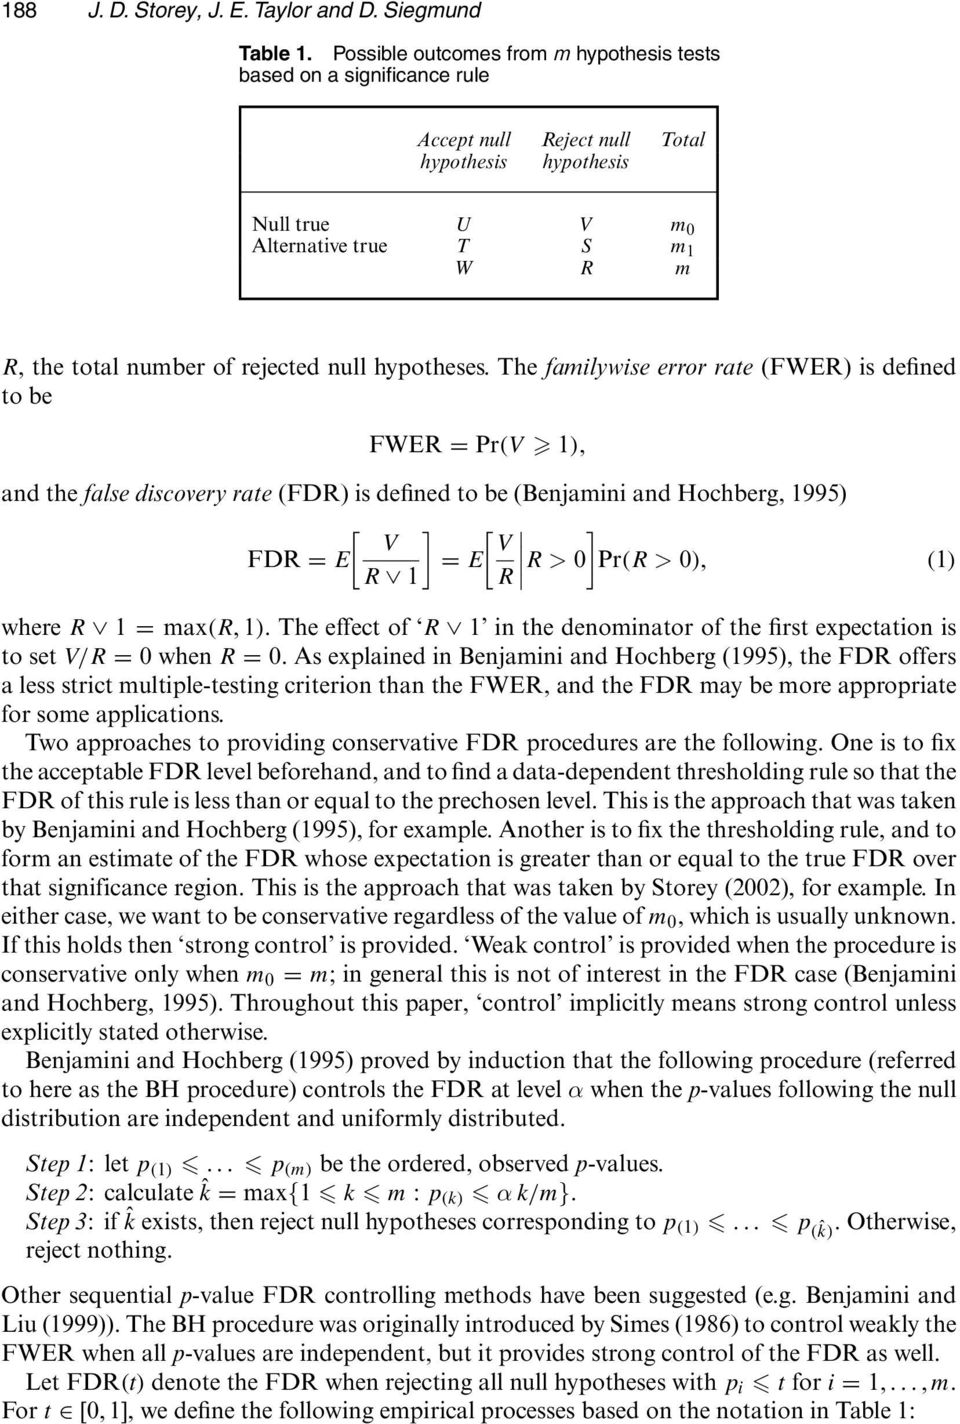 rejected null hypotheses. The familywise error rate (FWER) is defined to be FWER = Pr.V 1/, and the false discovery rate (FDR) is defined to be (Benjamini and Hochberg, 1995) V V FDR = E = E R 1 R Pr.